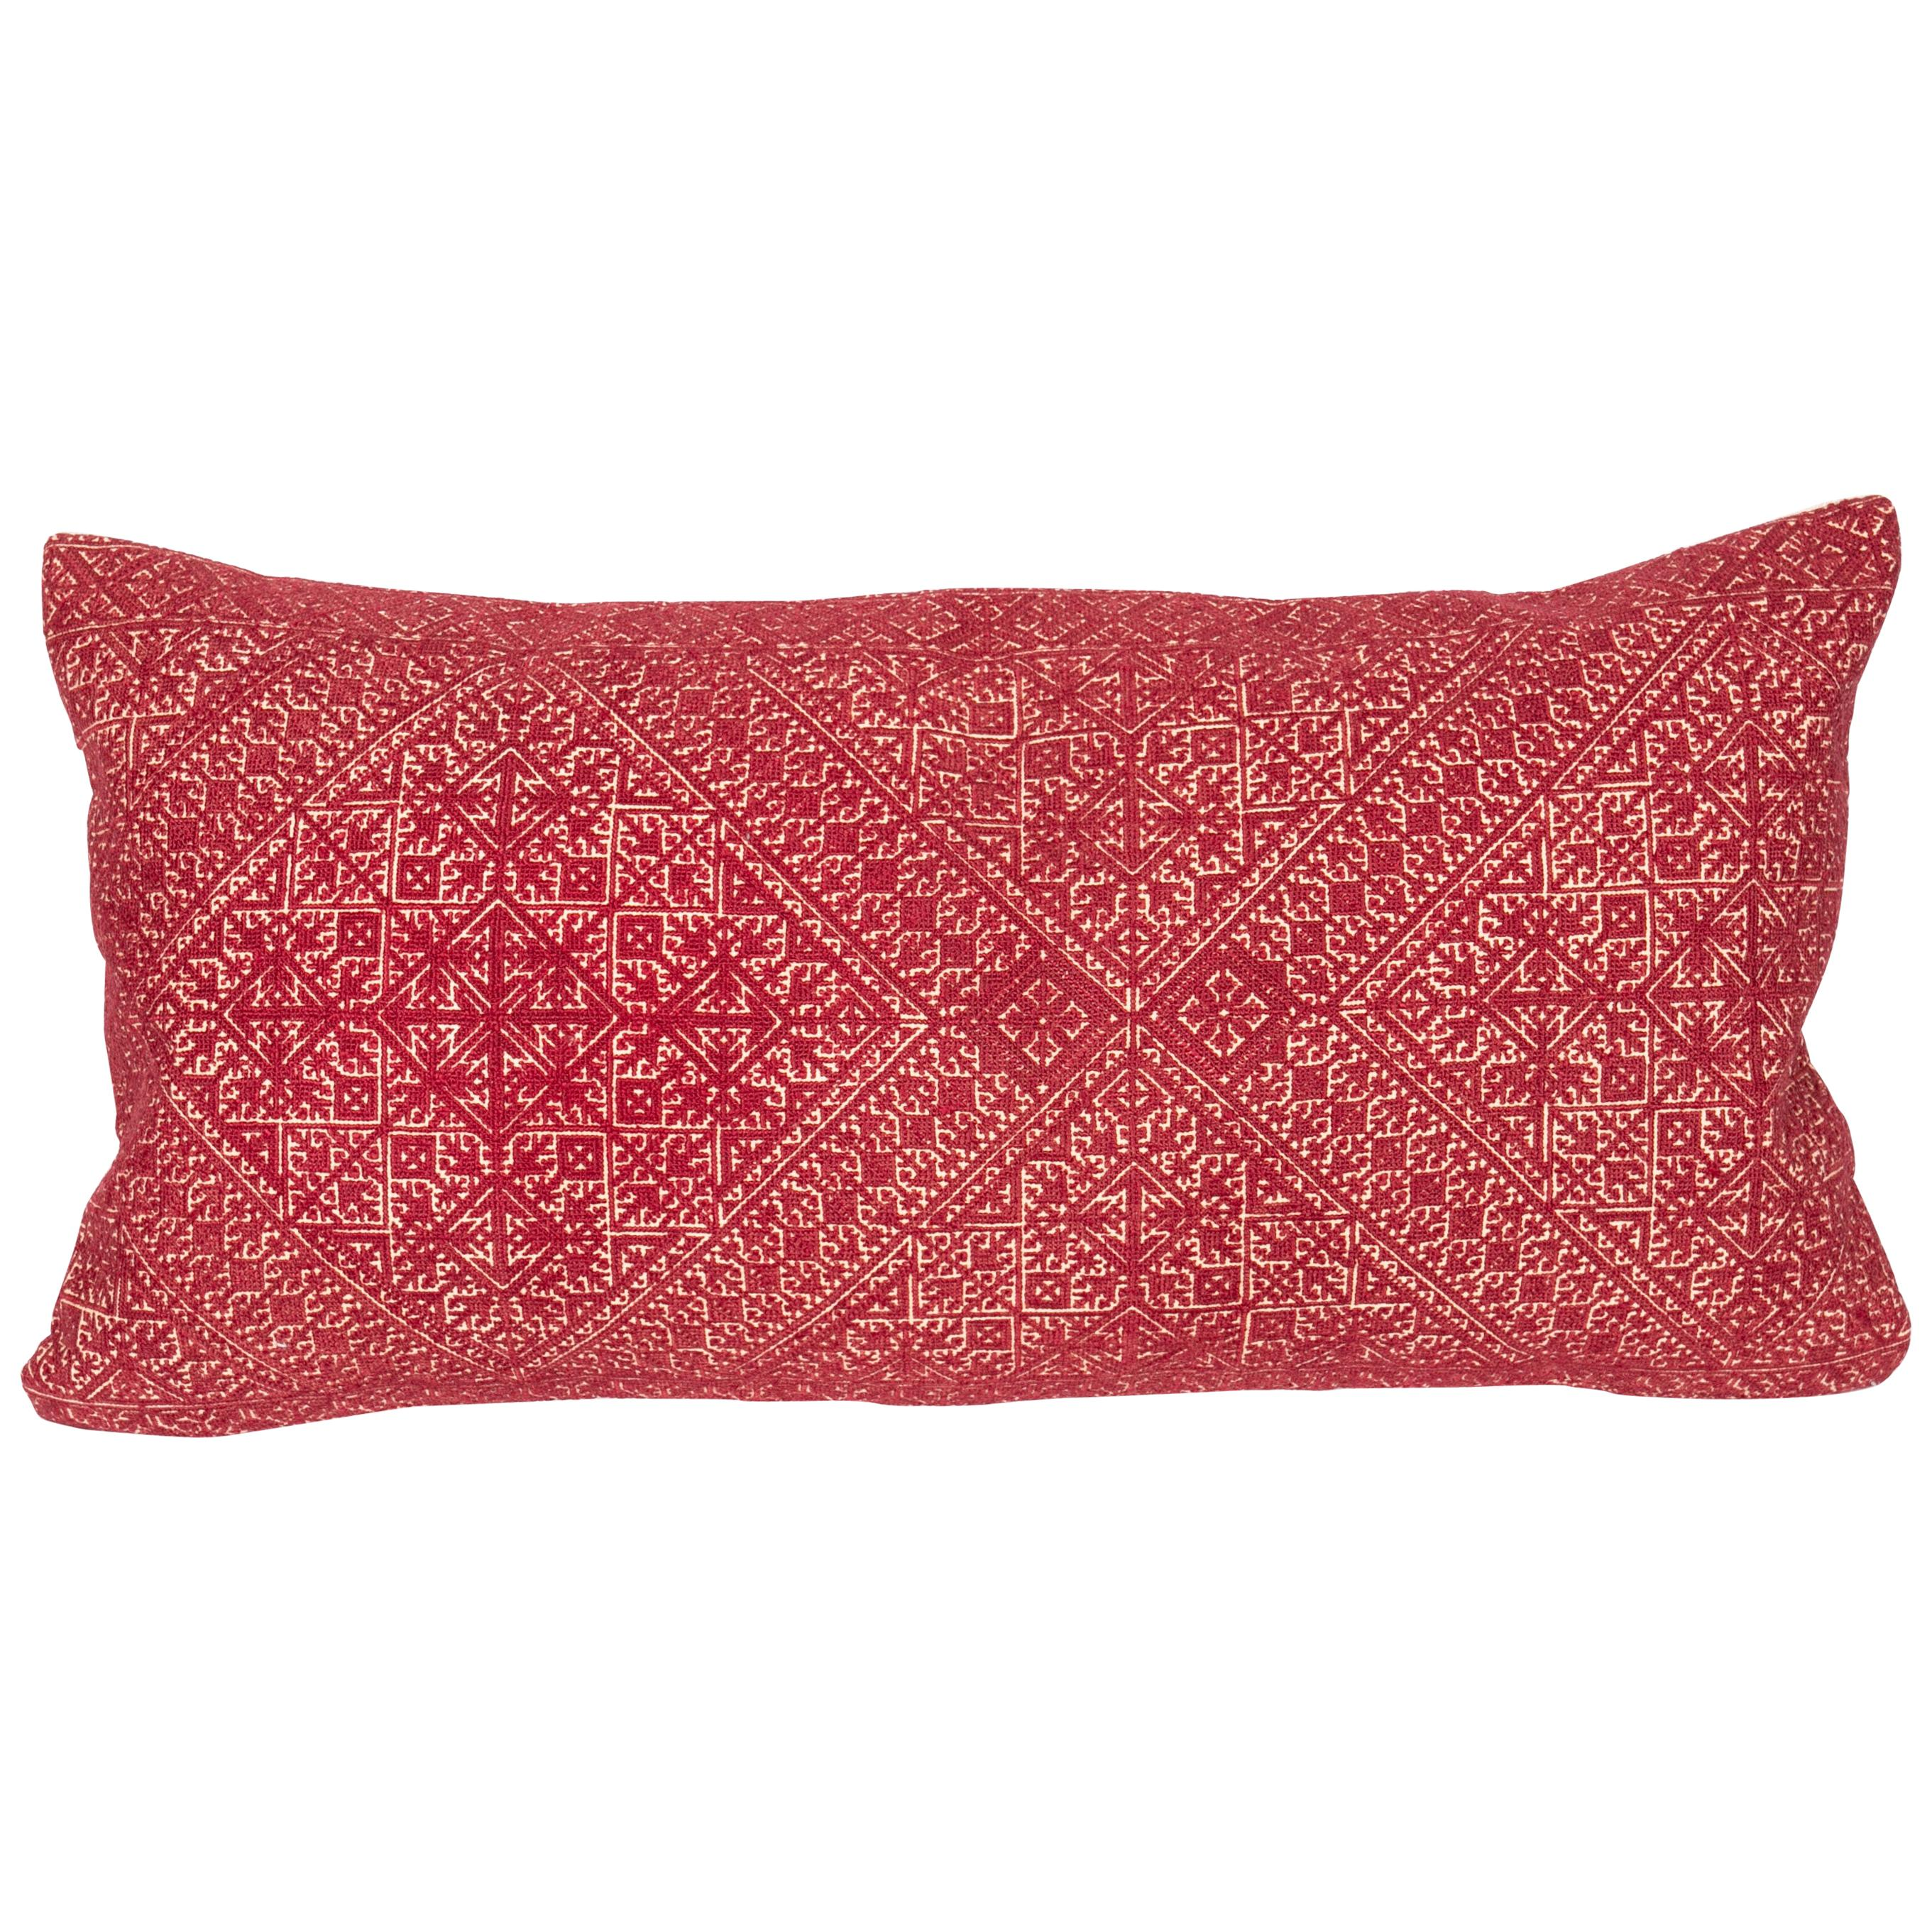 Antique Moroccan Fez Embroidery Pillow Case, Early 20th Century